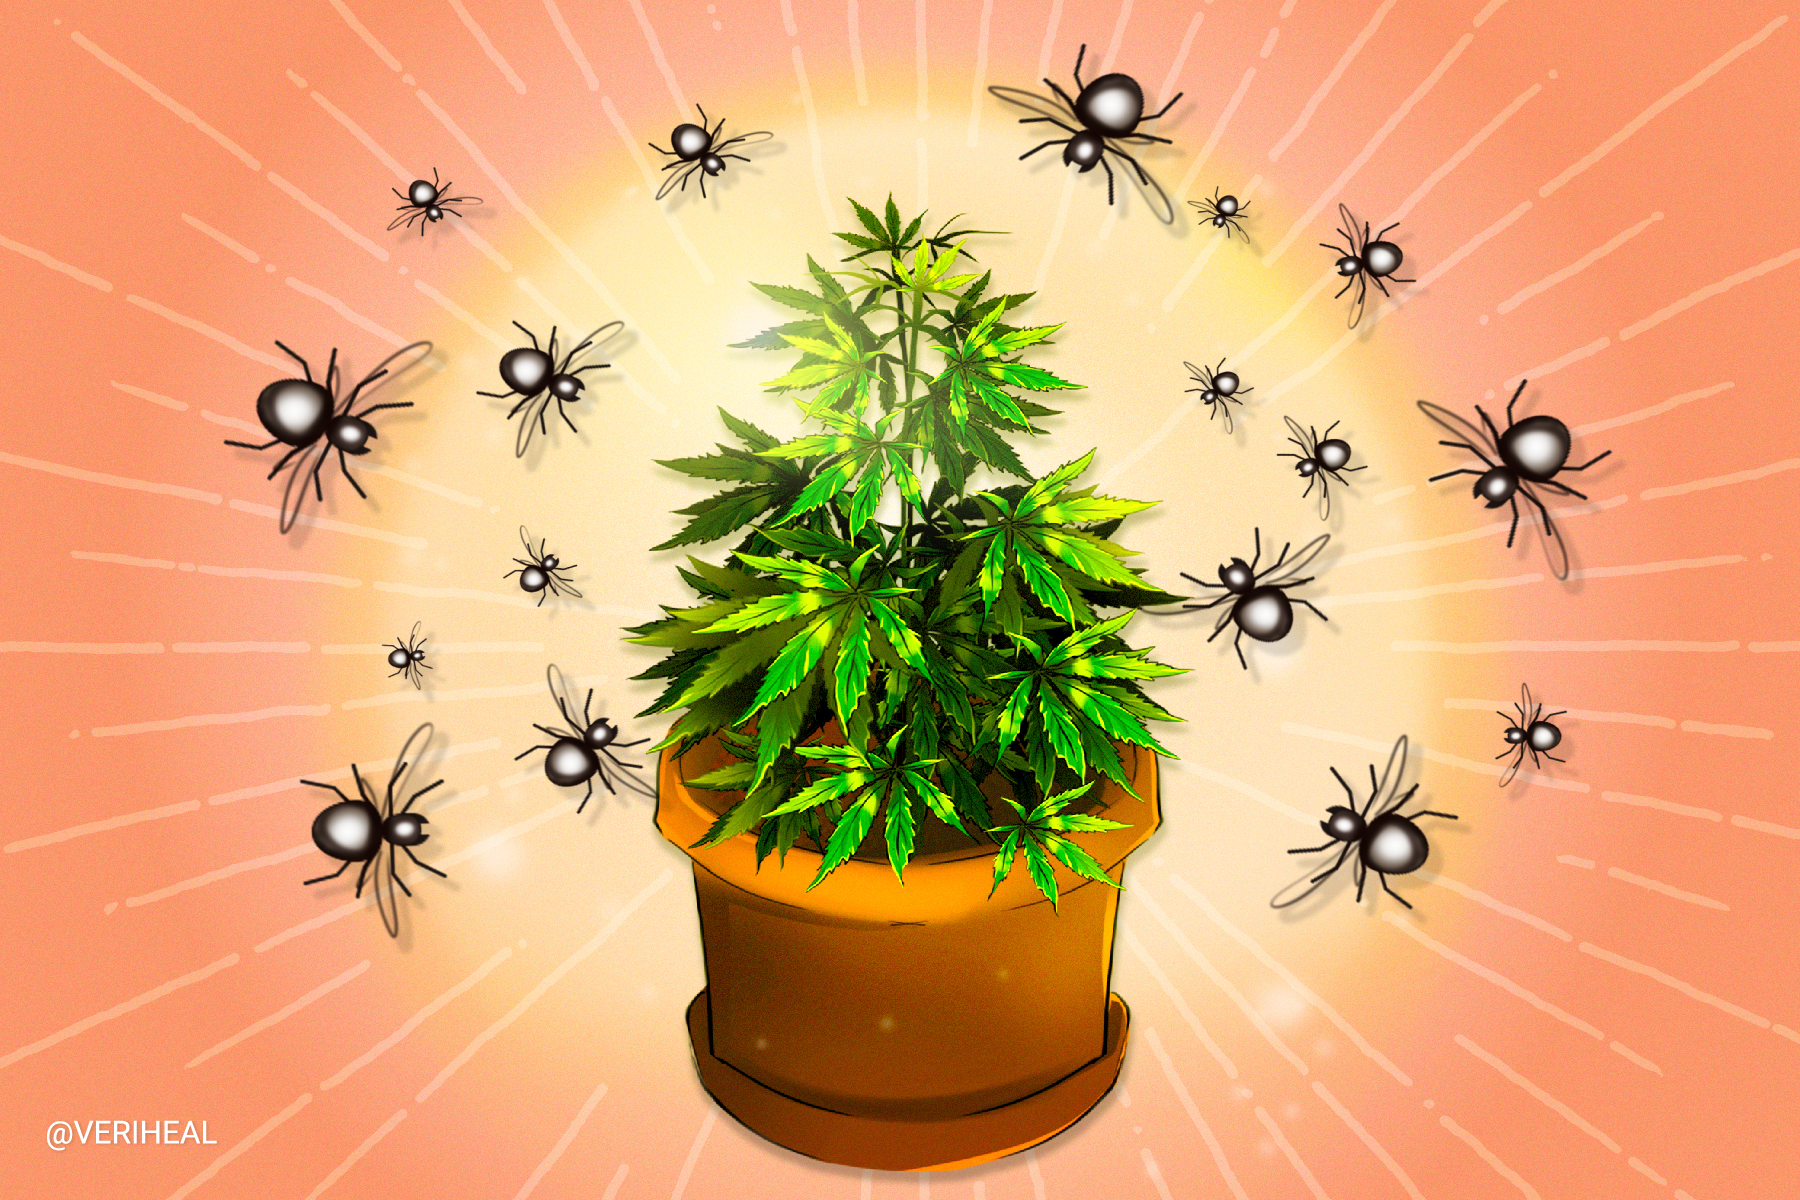 The Importance of IPM, or Integrated Pest Management Systems for Cannabis Grows